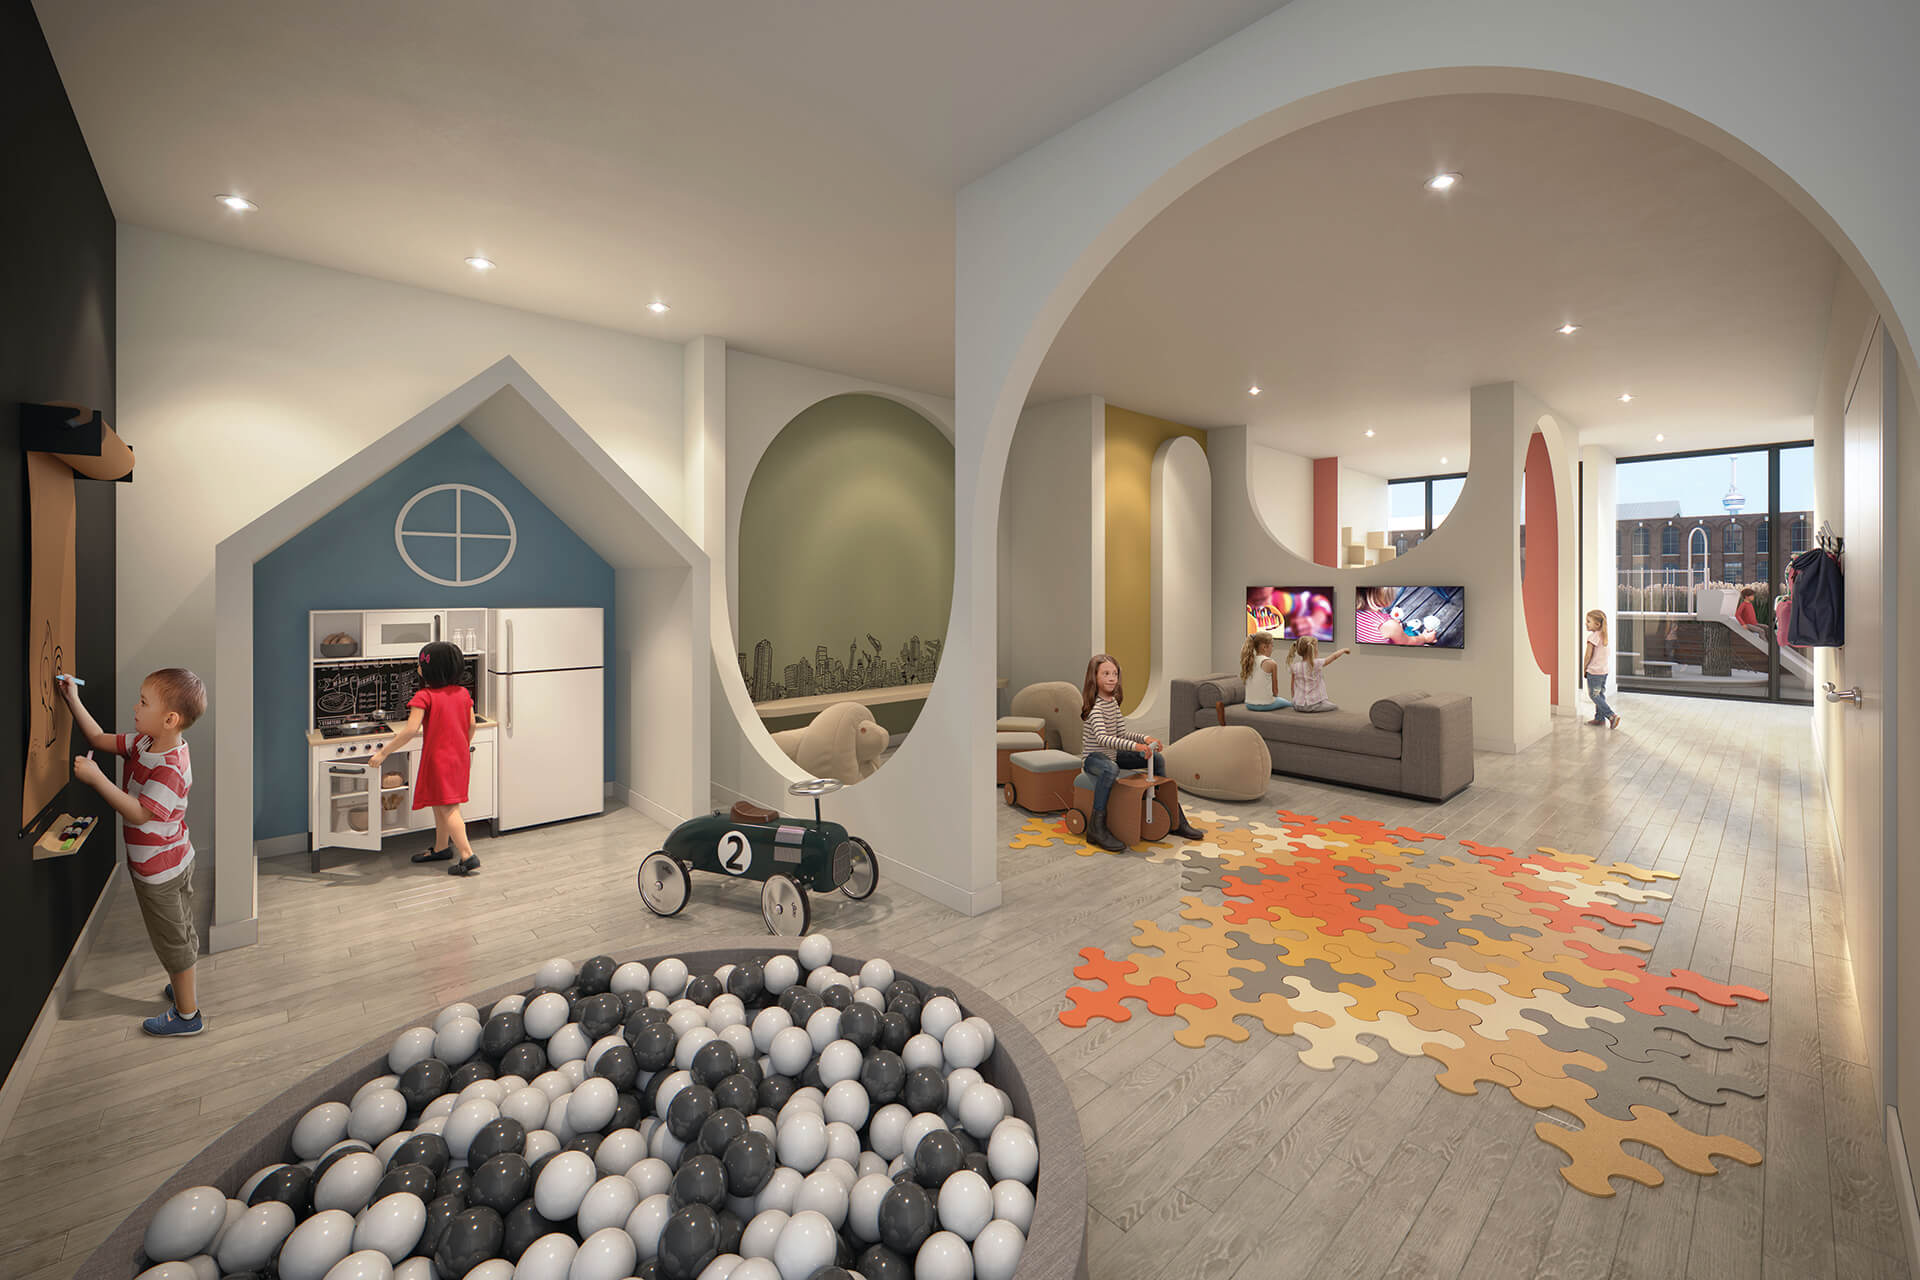 Kid's play room with ball pit and other areas at XO Condos.